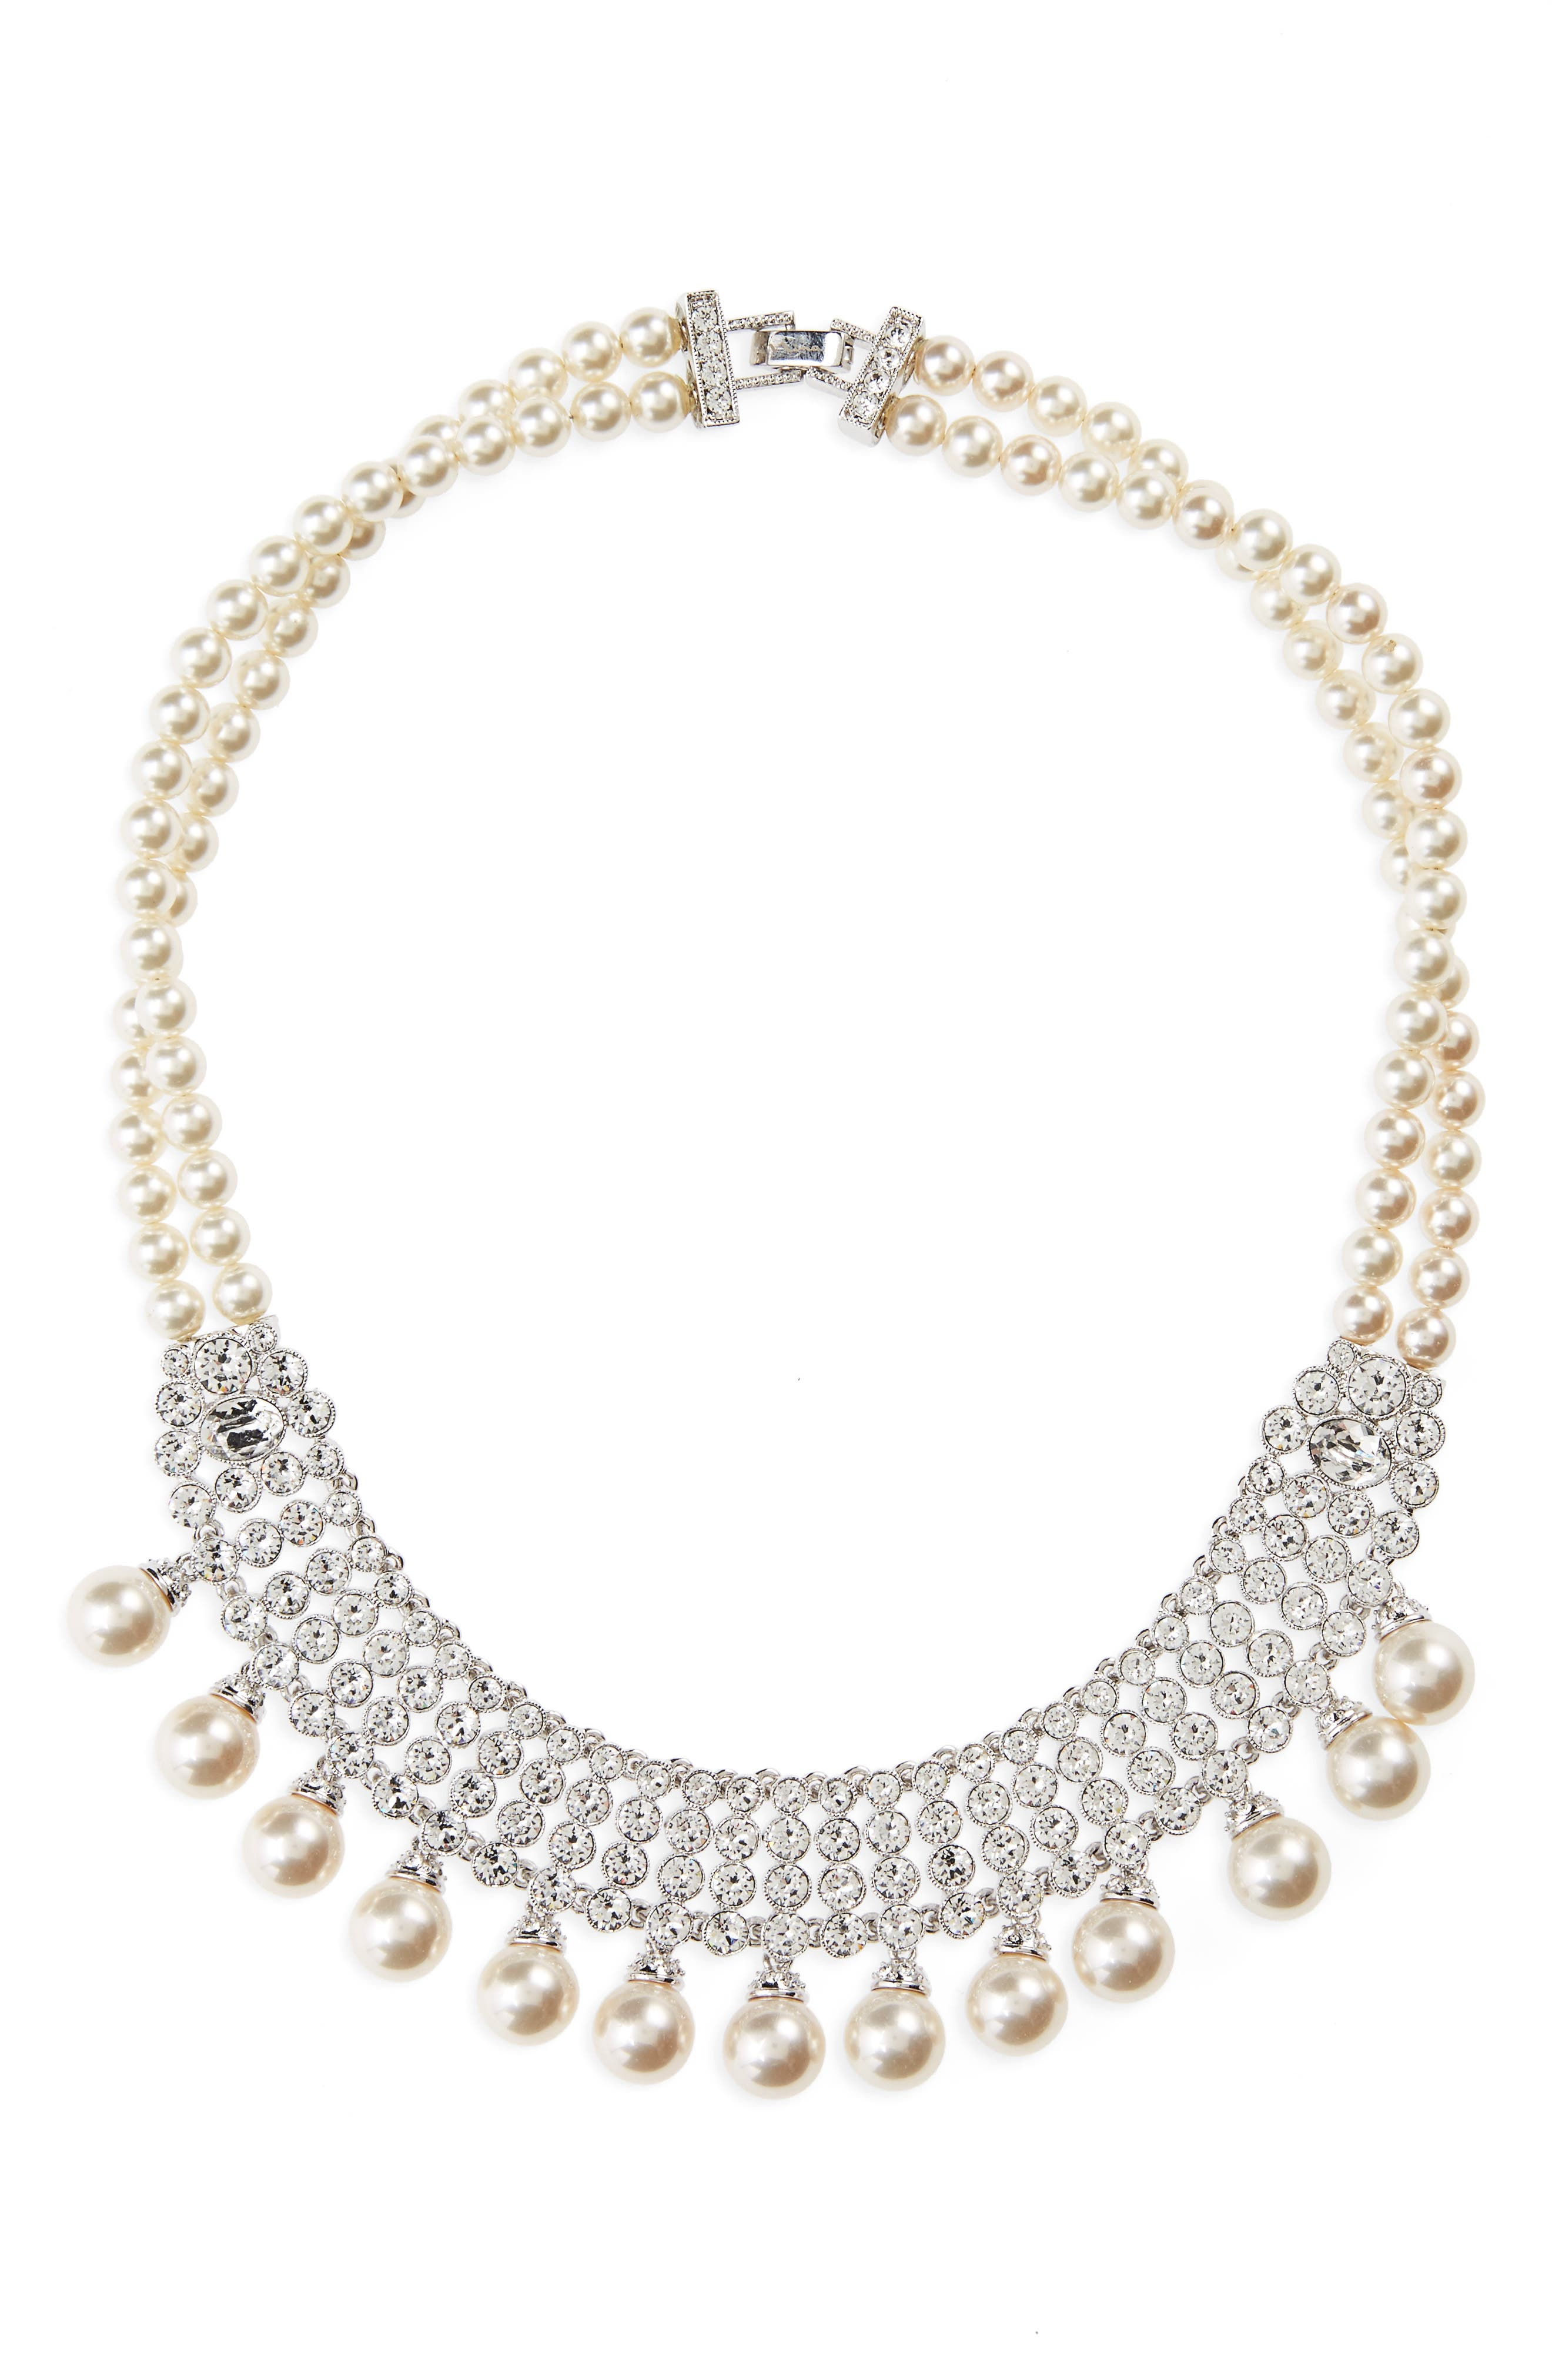 Glam Imitation Pearl Fringe Necklace,                             Main thumbnail 1, color,                             040